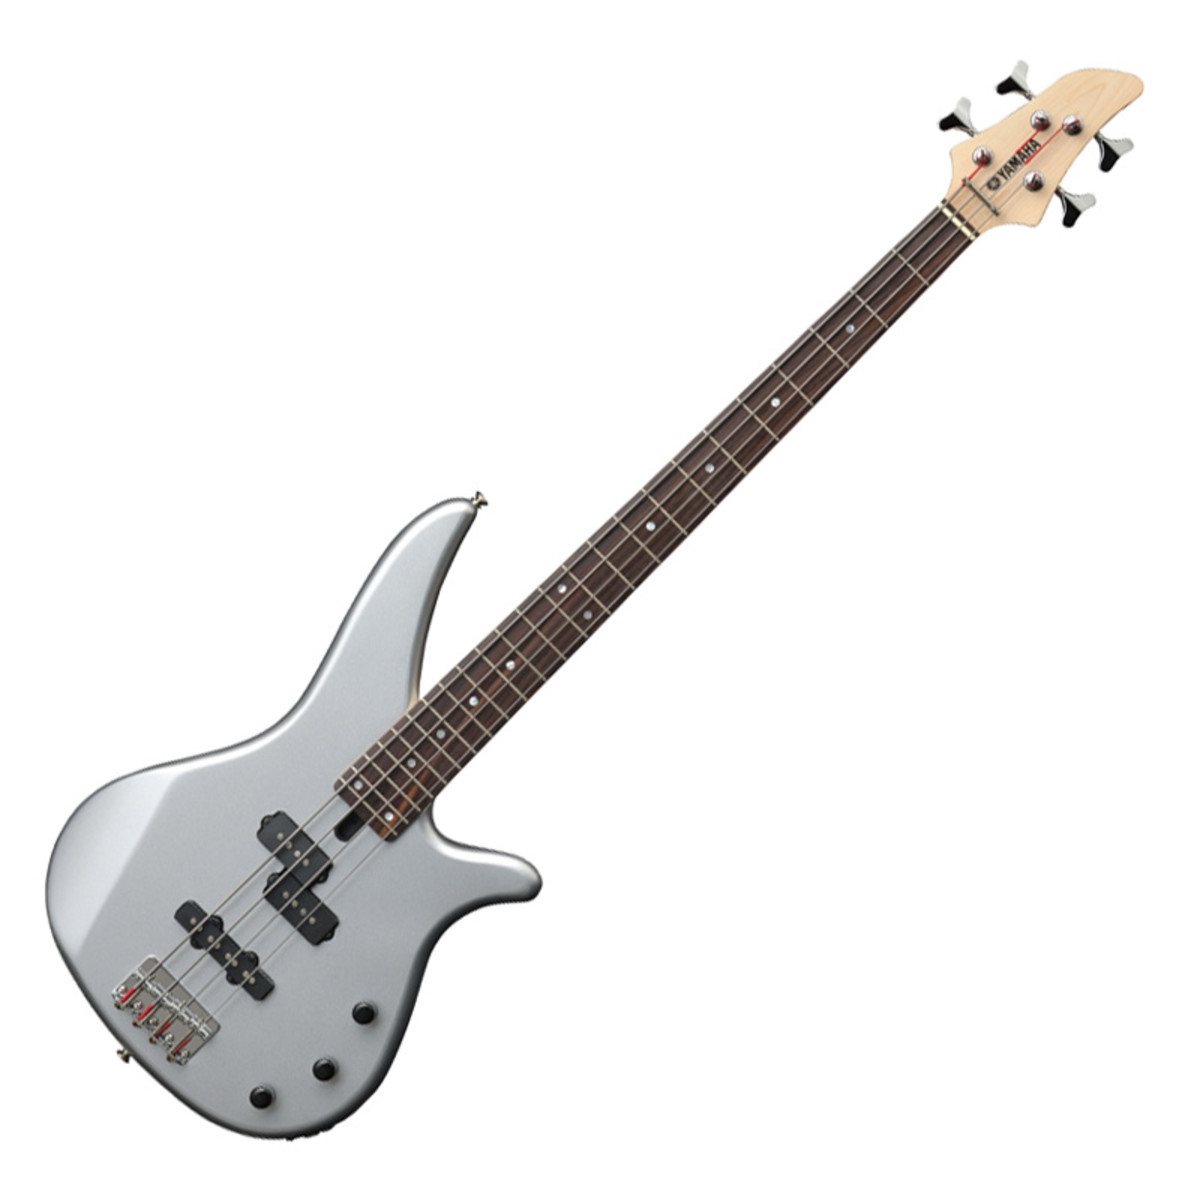 This is the same model of bass my bassist plays. It's got great action.